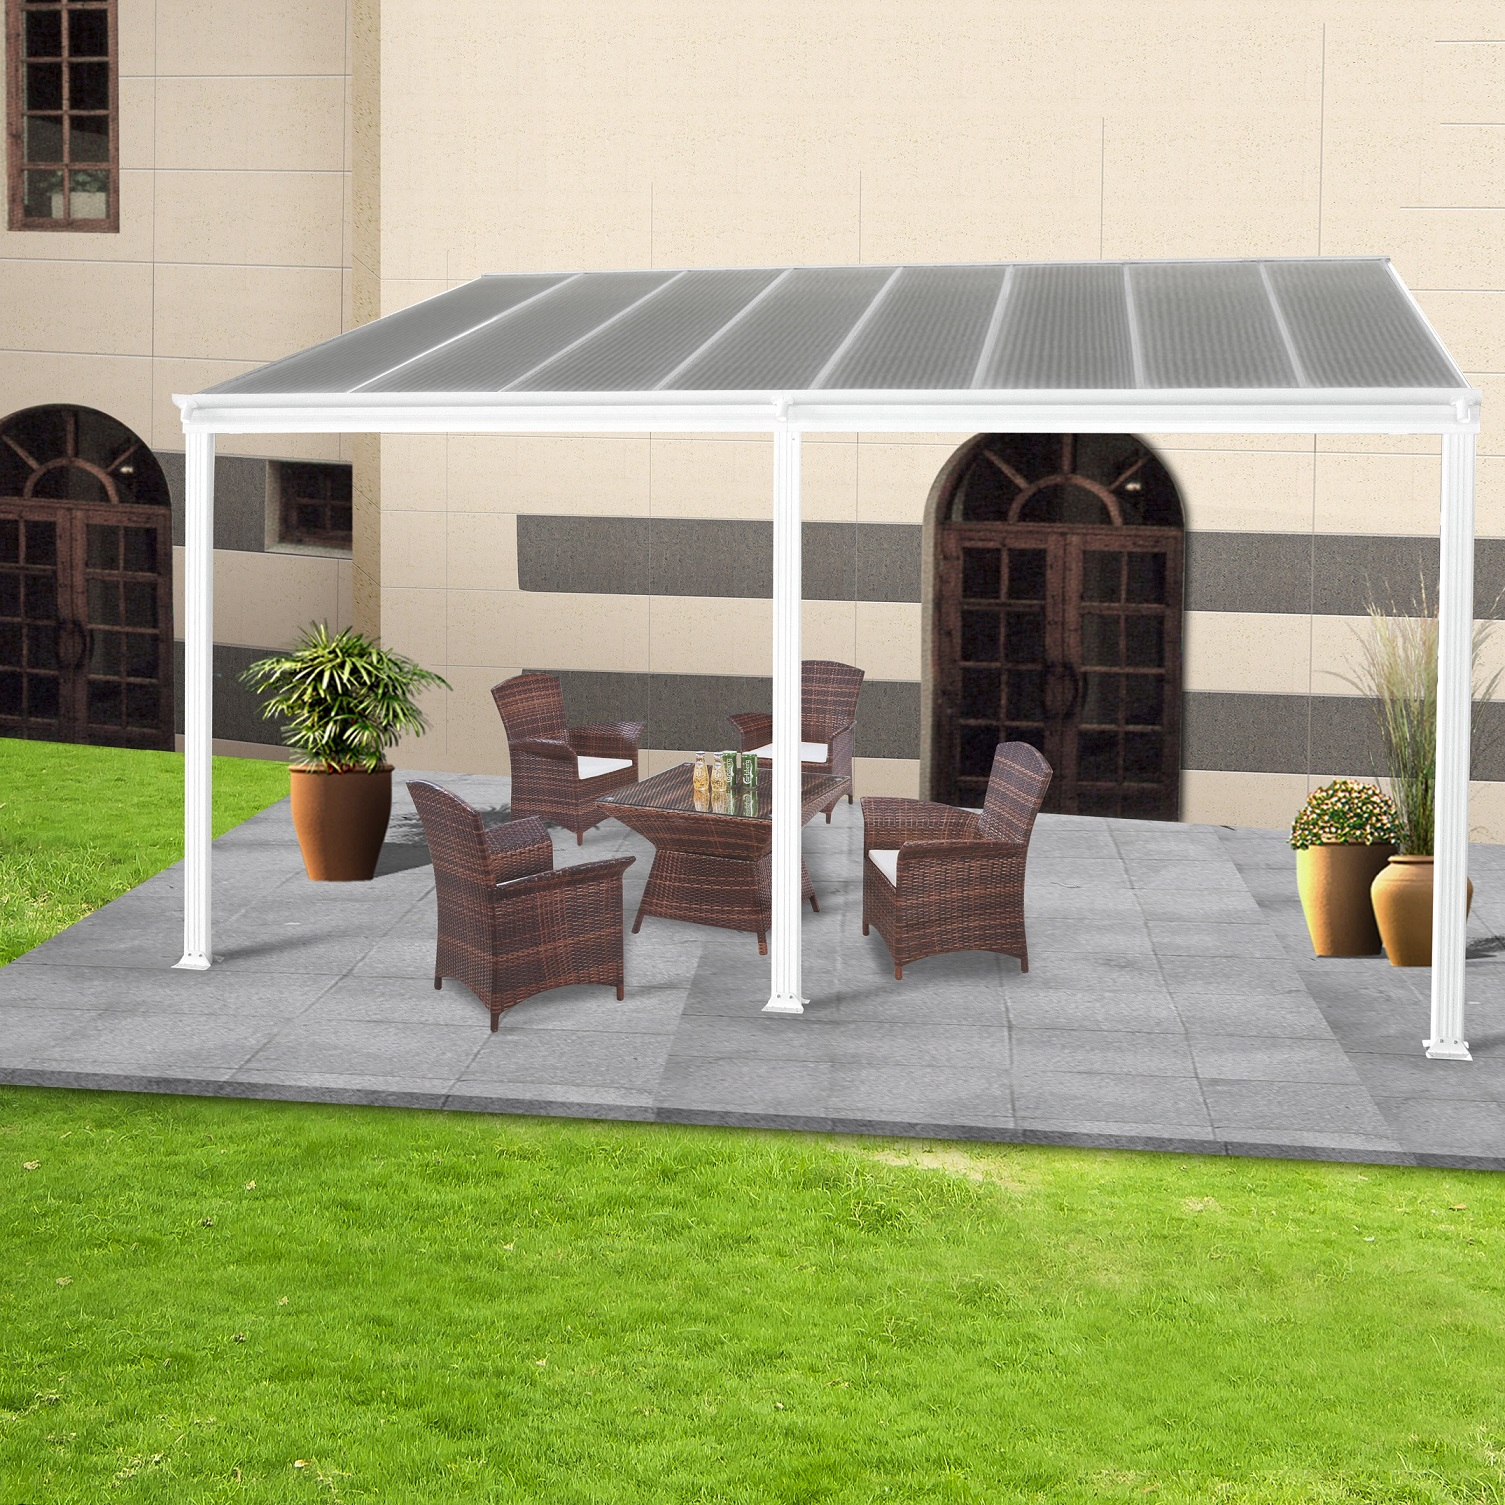 toit terrasse pergola 5x3 m en aluminium blanc bouvara tt3050bw8 bouvara des prix attractifs. Black Bedroom Furniture Sets. Home Design Ideas